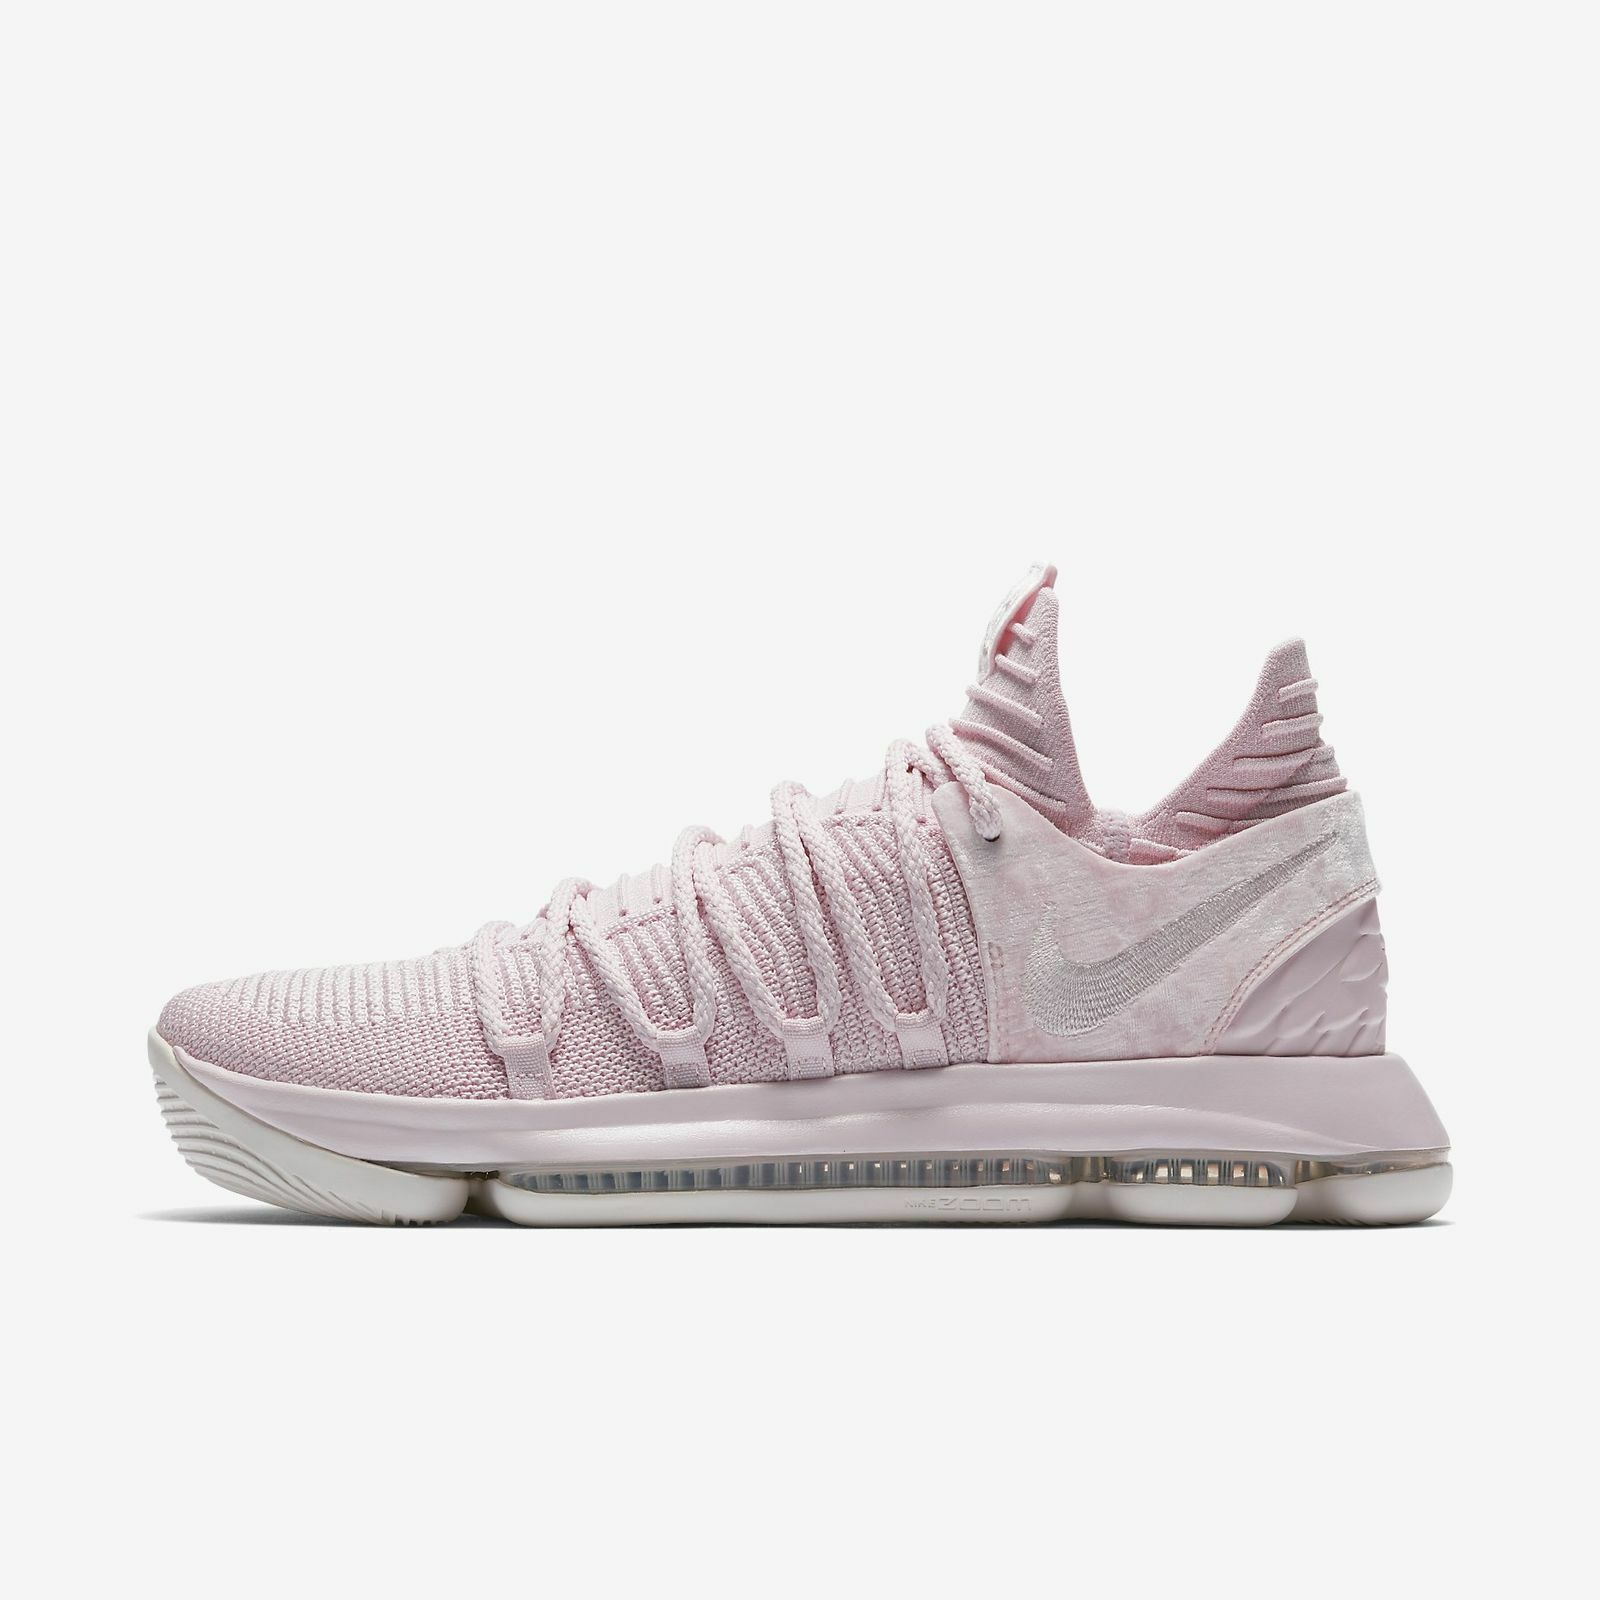 New Nike Zoom KD 10 X AP Aunt Pearl Pink White Sail Durant Size 9.5 AQ41110 60